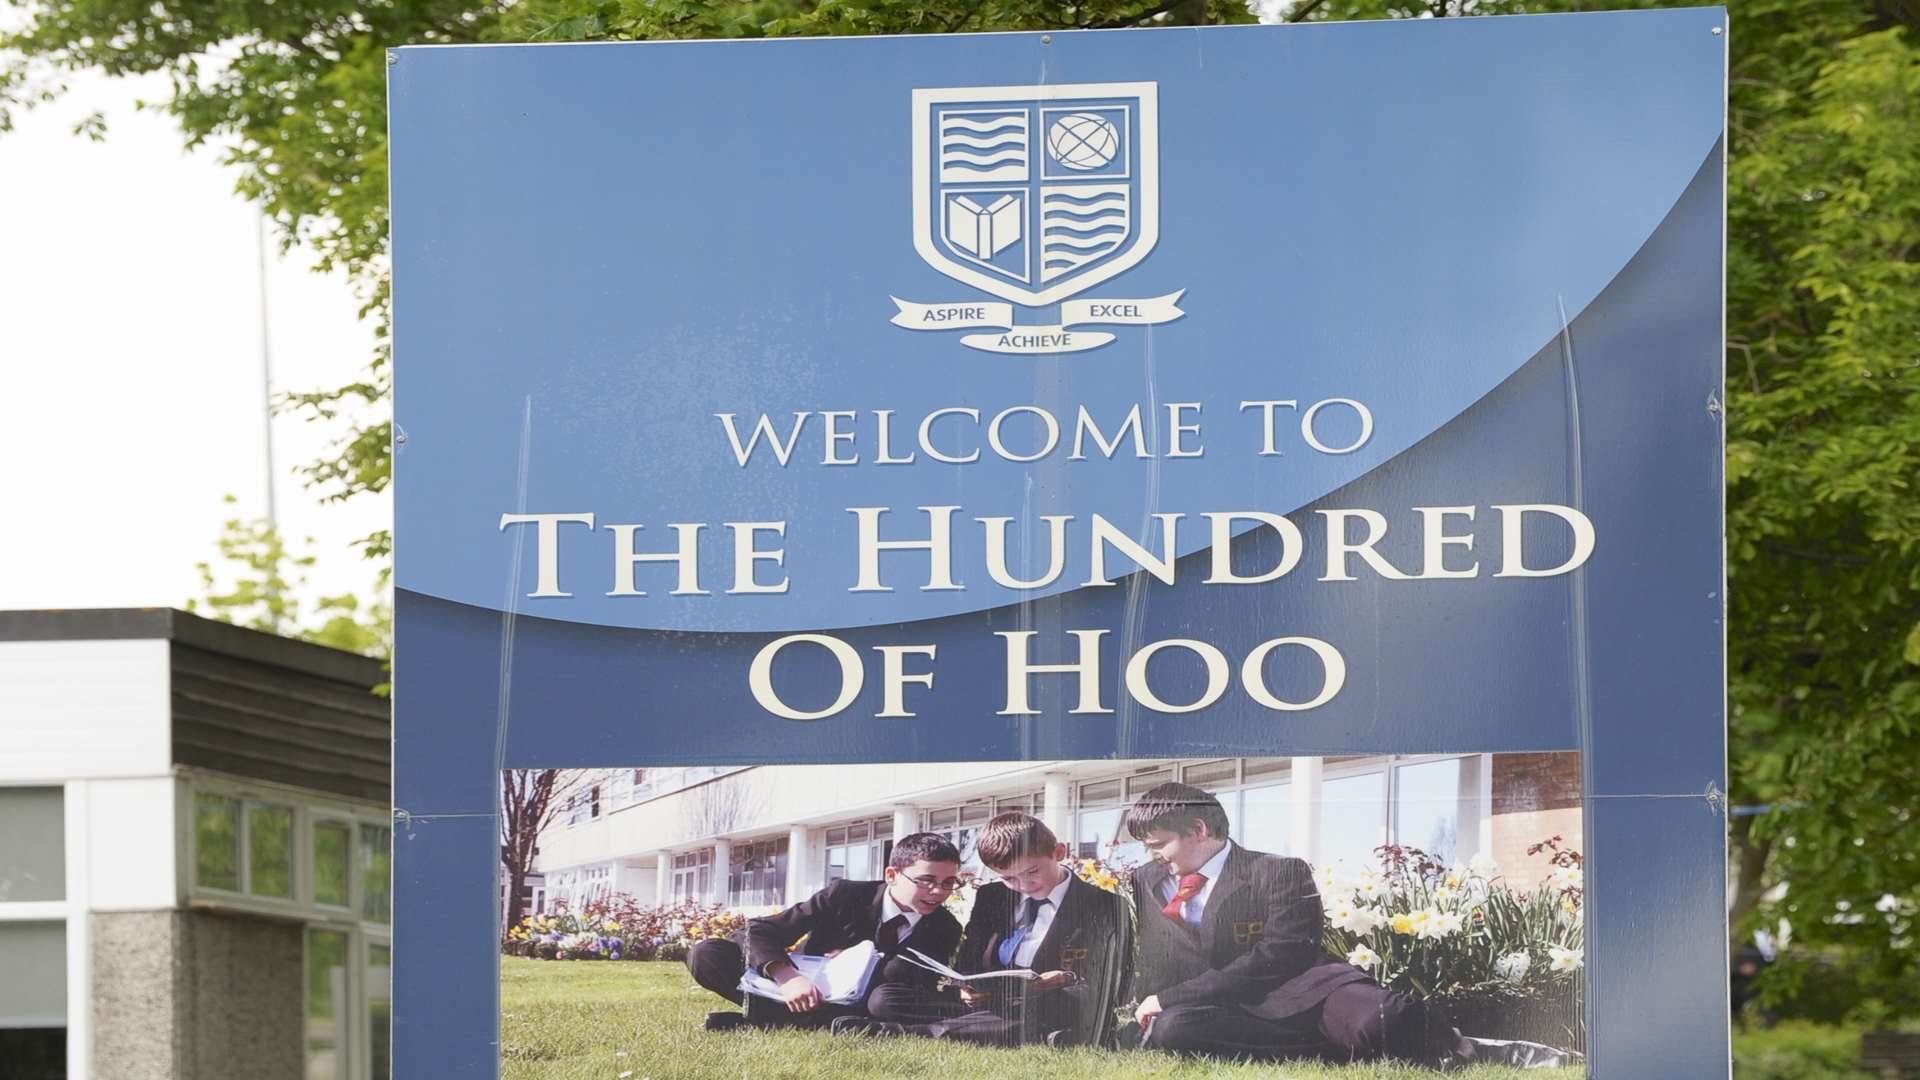 Gary Vyse was in charge of the Hundred of Hoo school